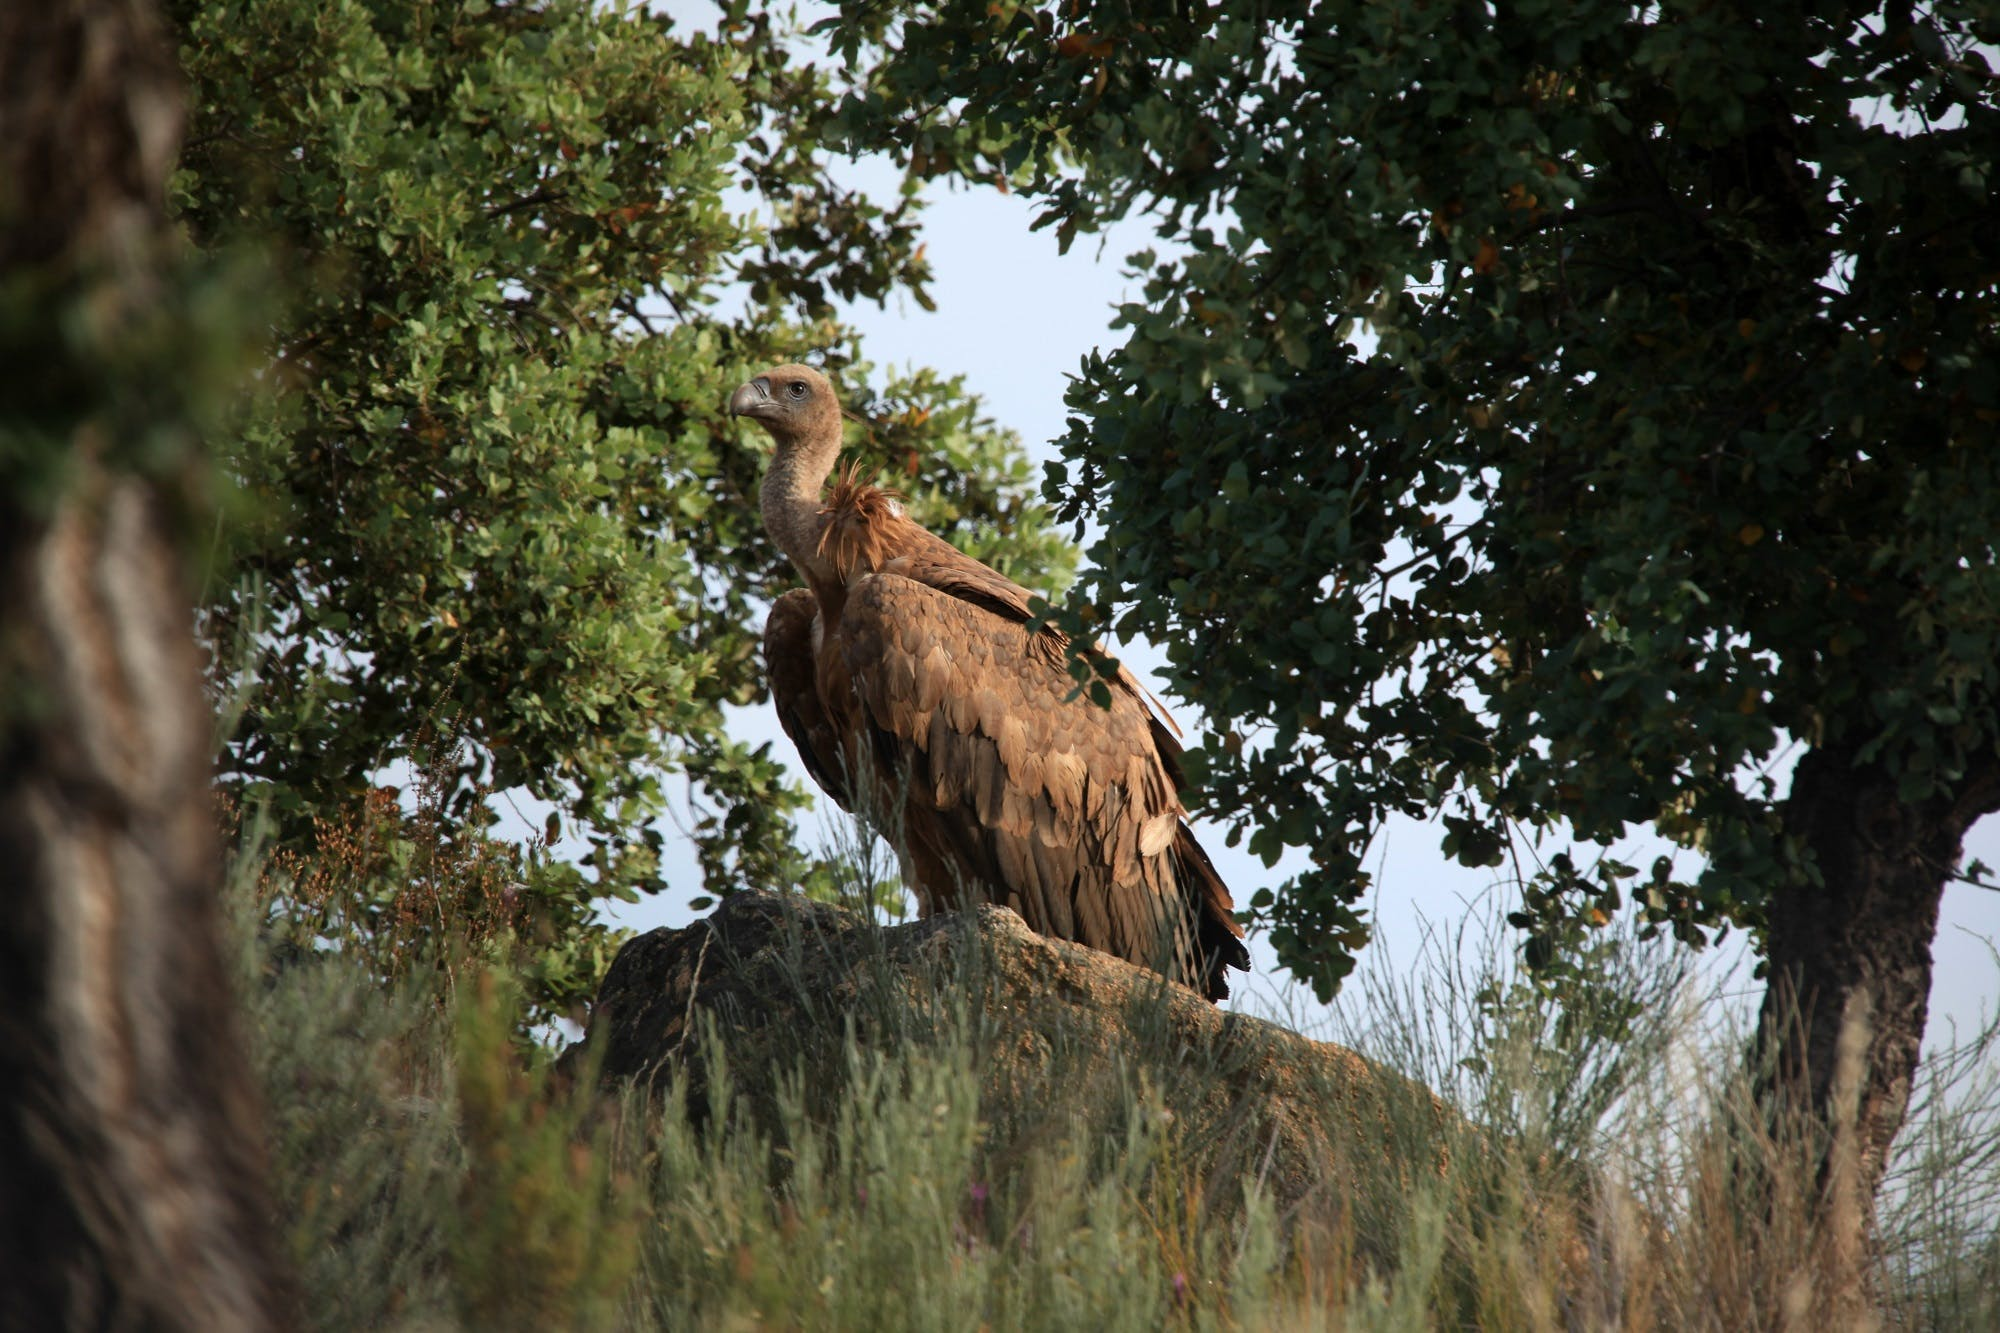 Griffon vulture among the vegetation at the project area in the Côa Valley